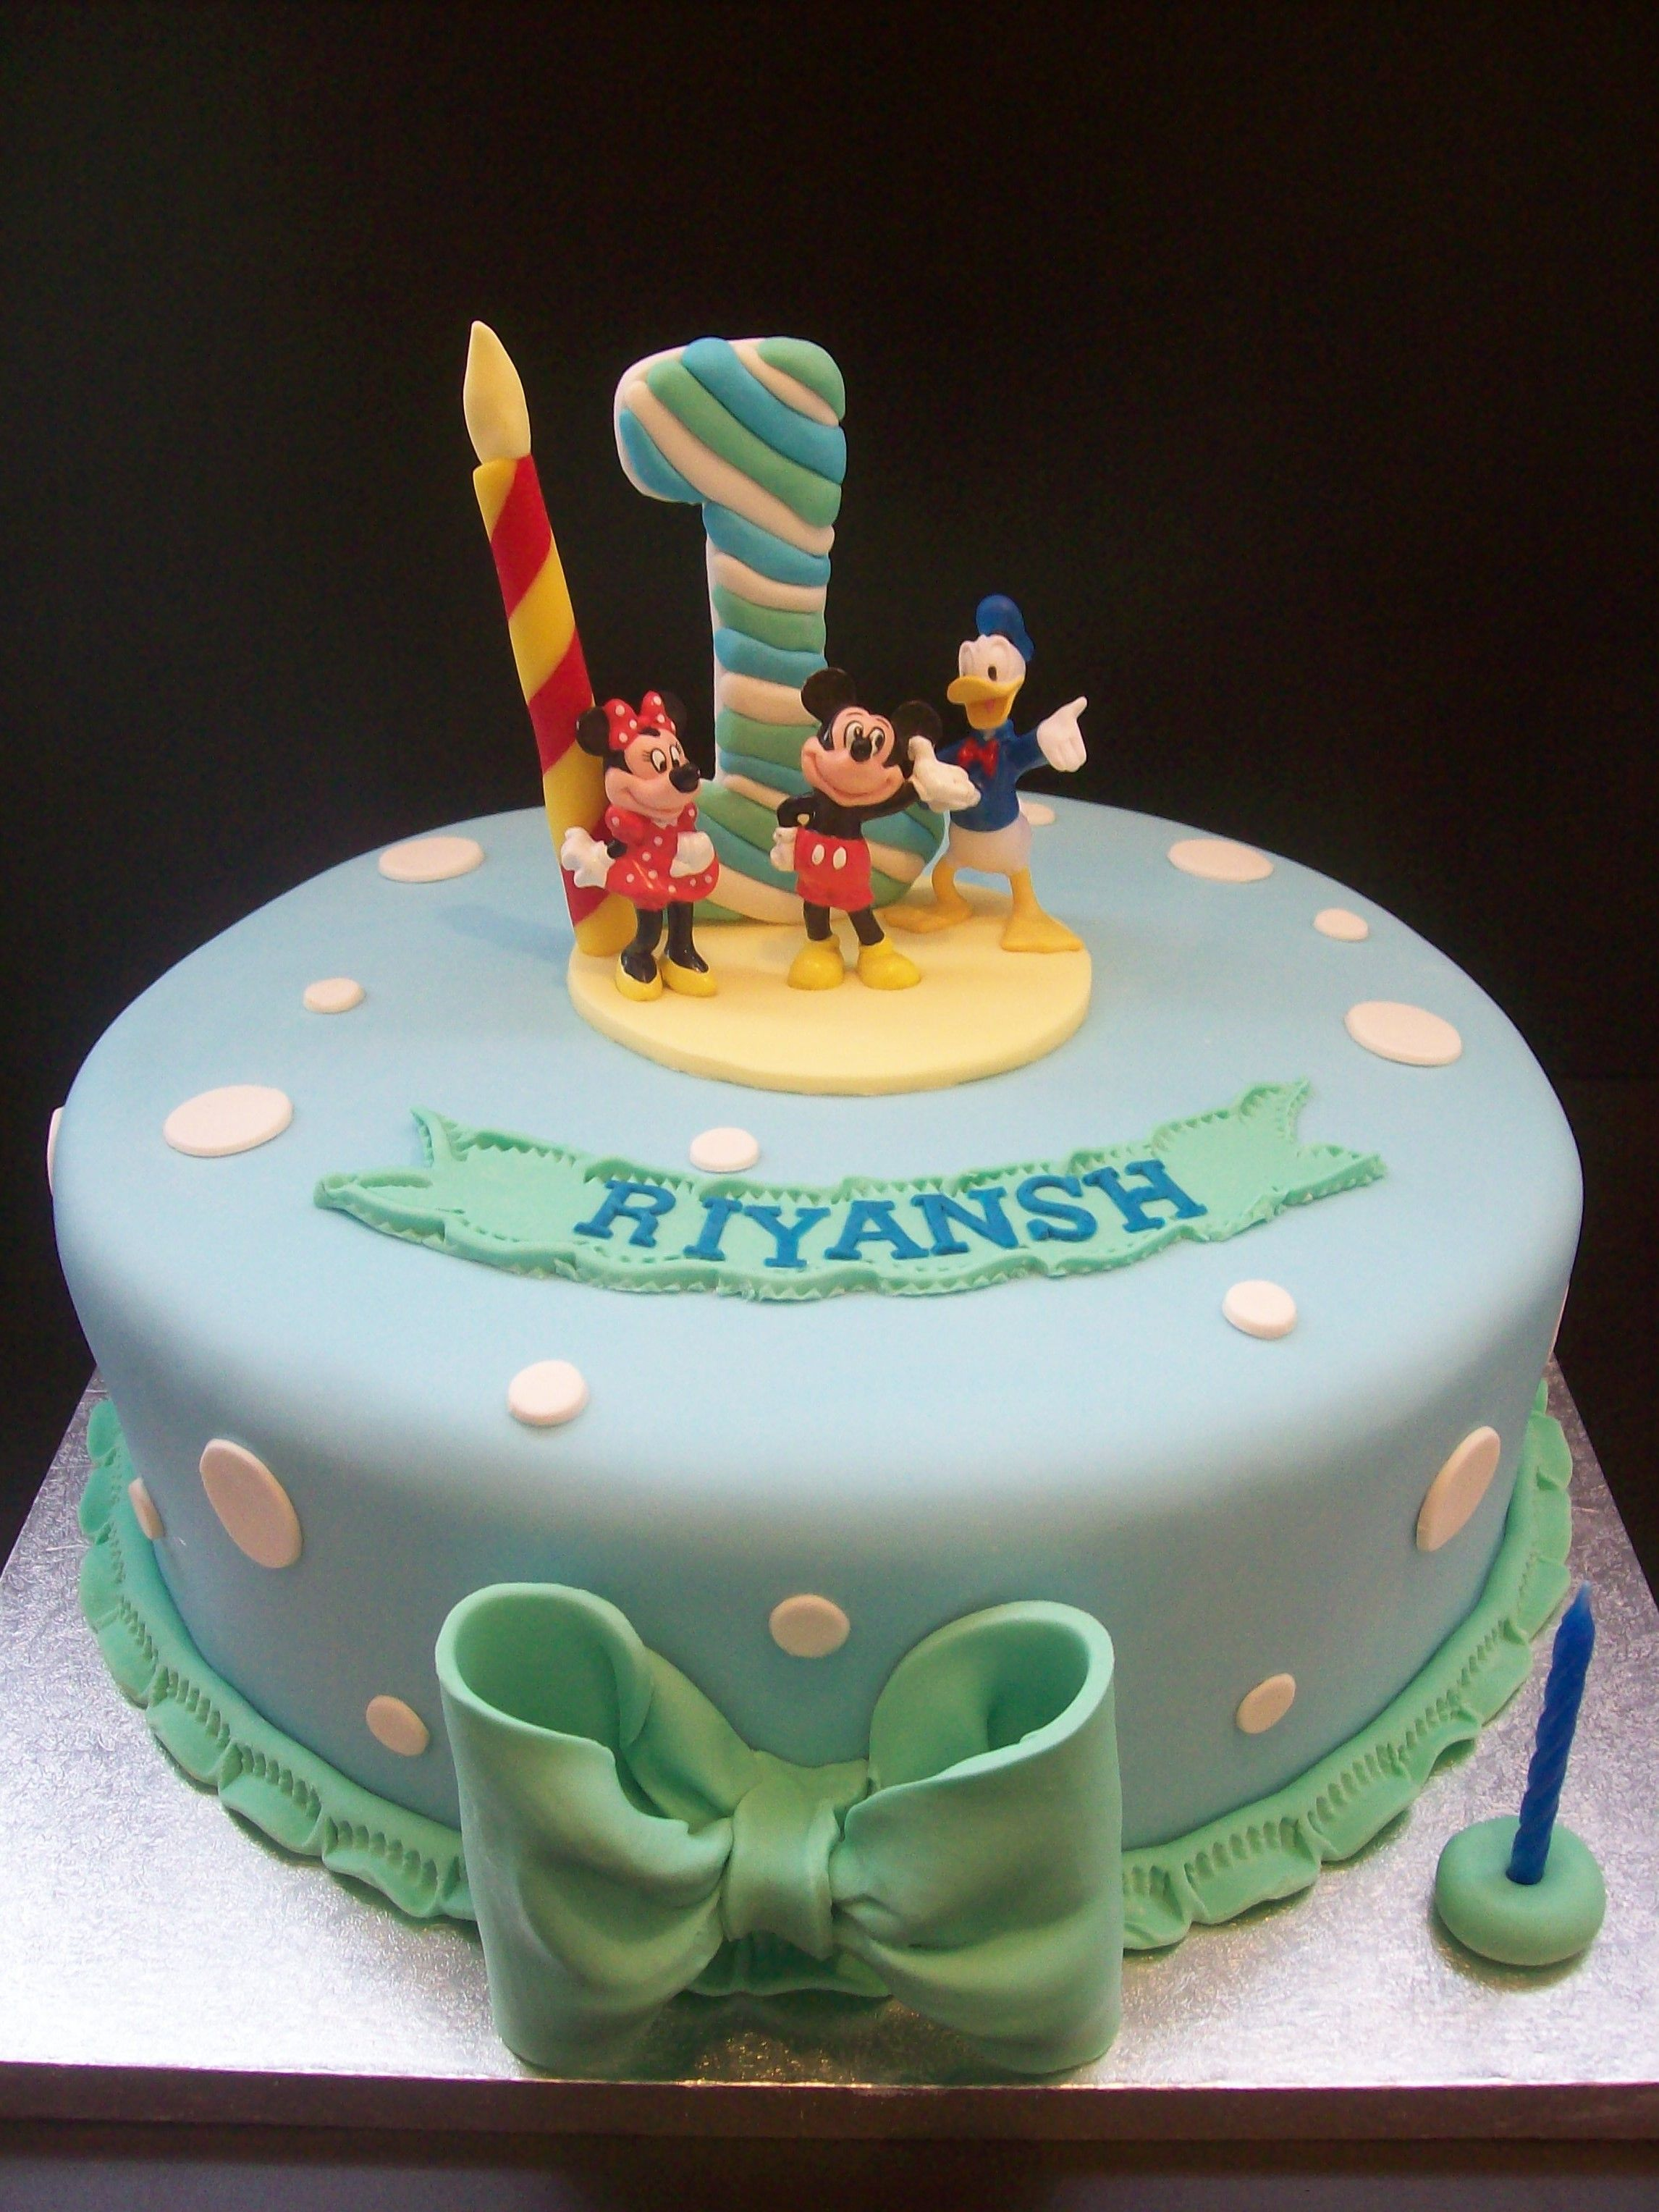 Mickey Mouse Cake Auckland FREE Delivery AKL Non Rural 195 10 Inch Figurines Bought From A Licensed Retailer